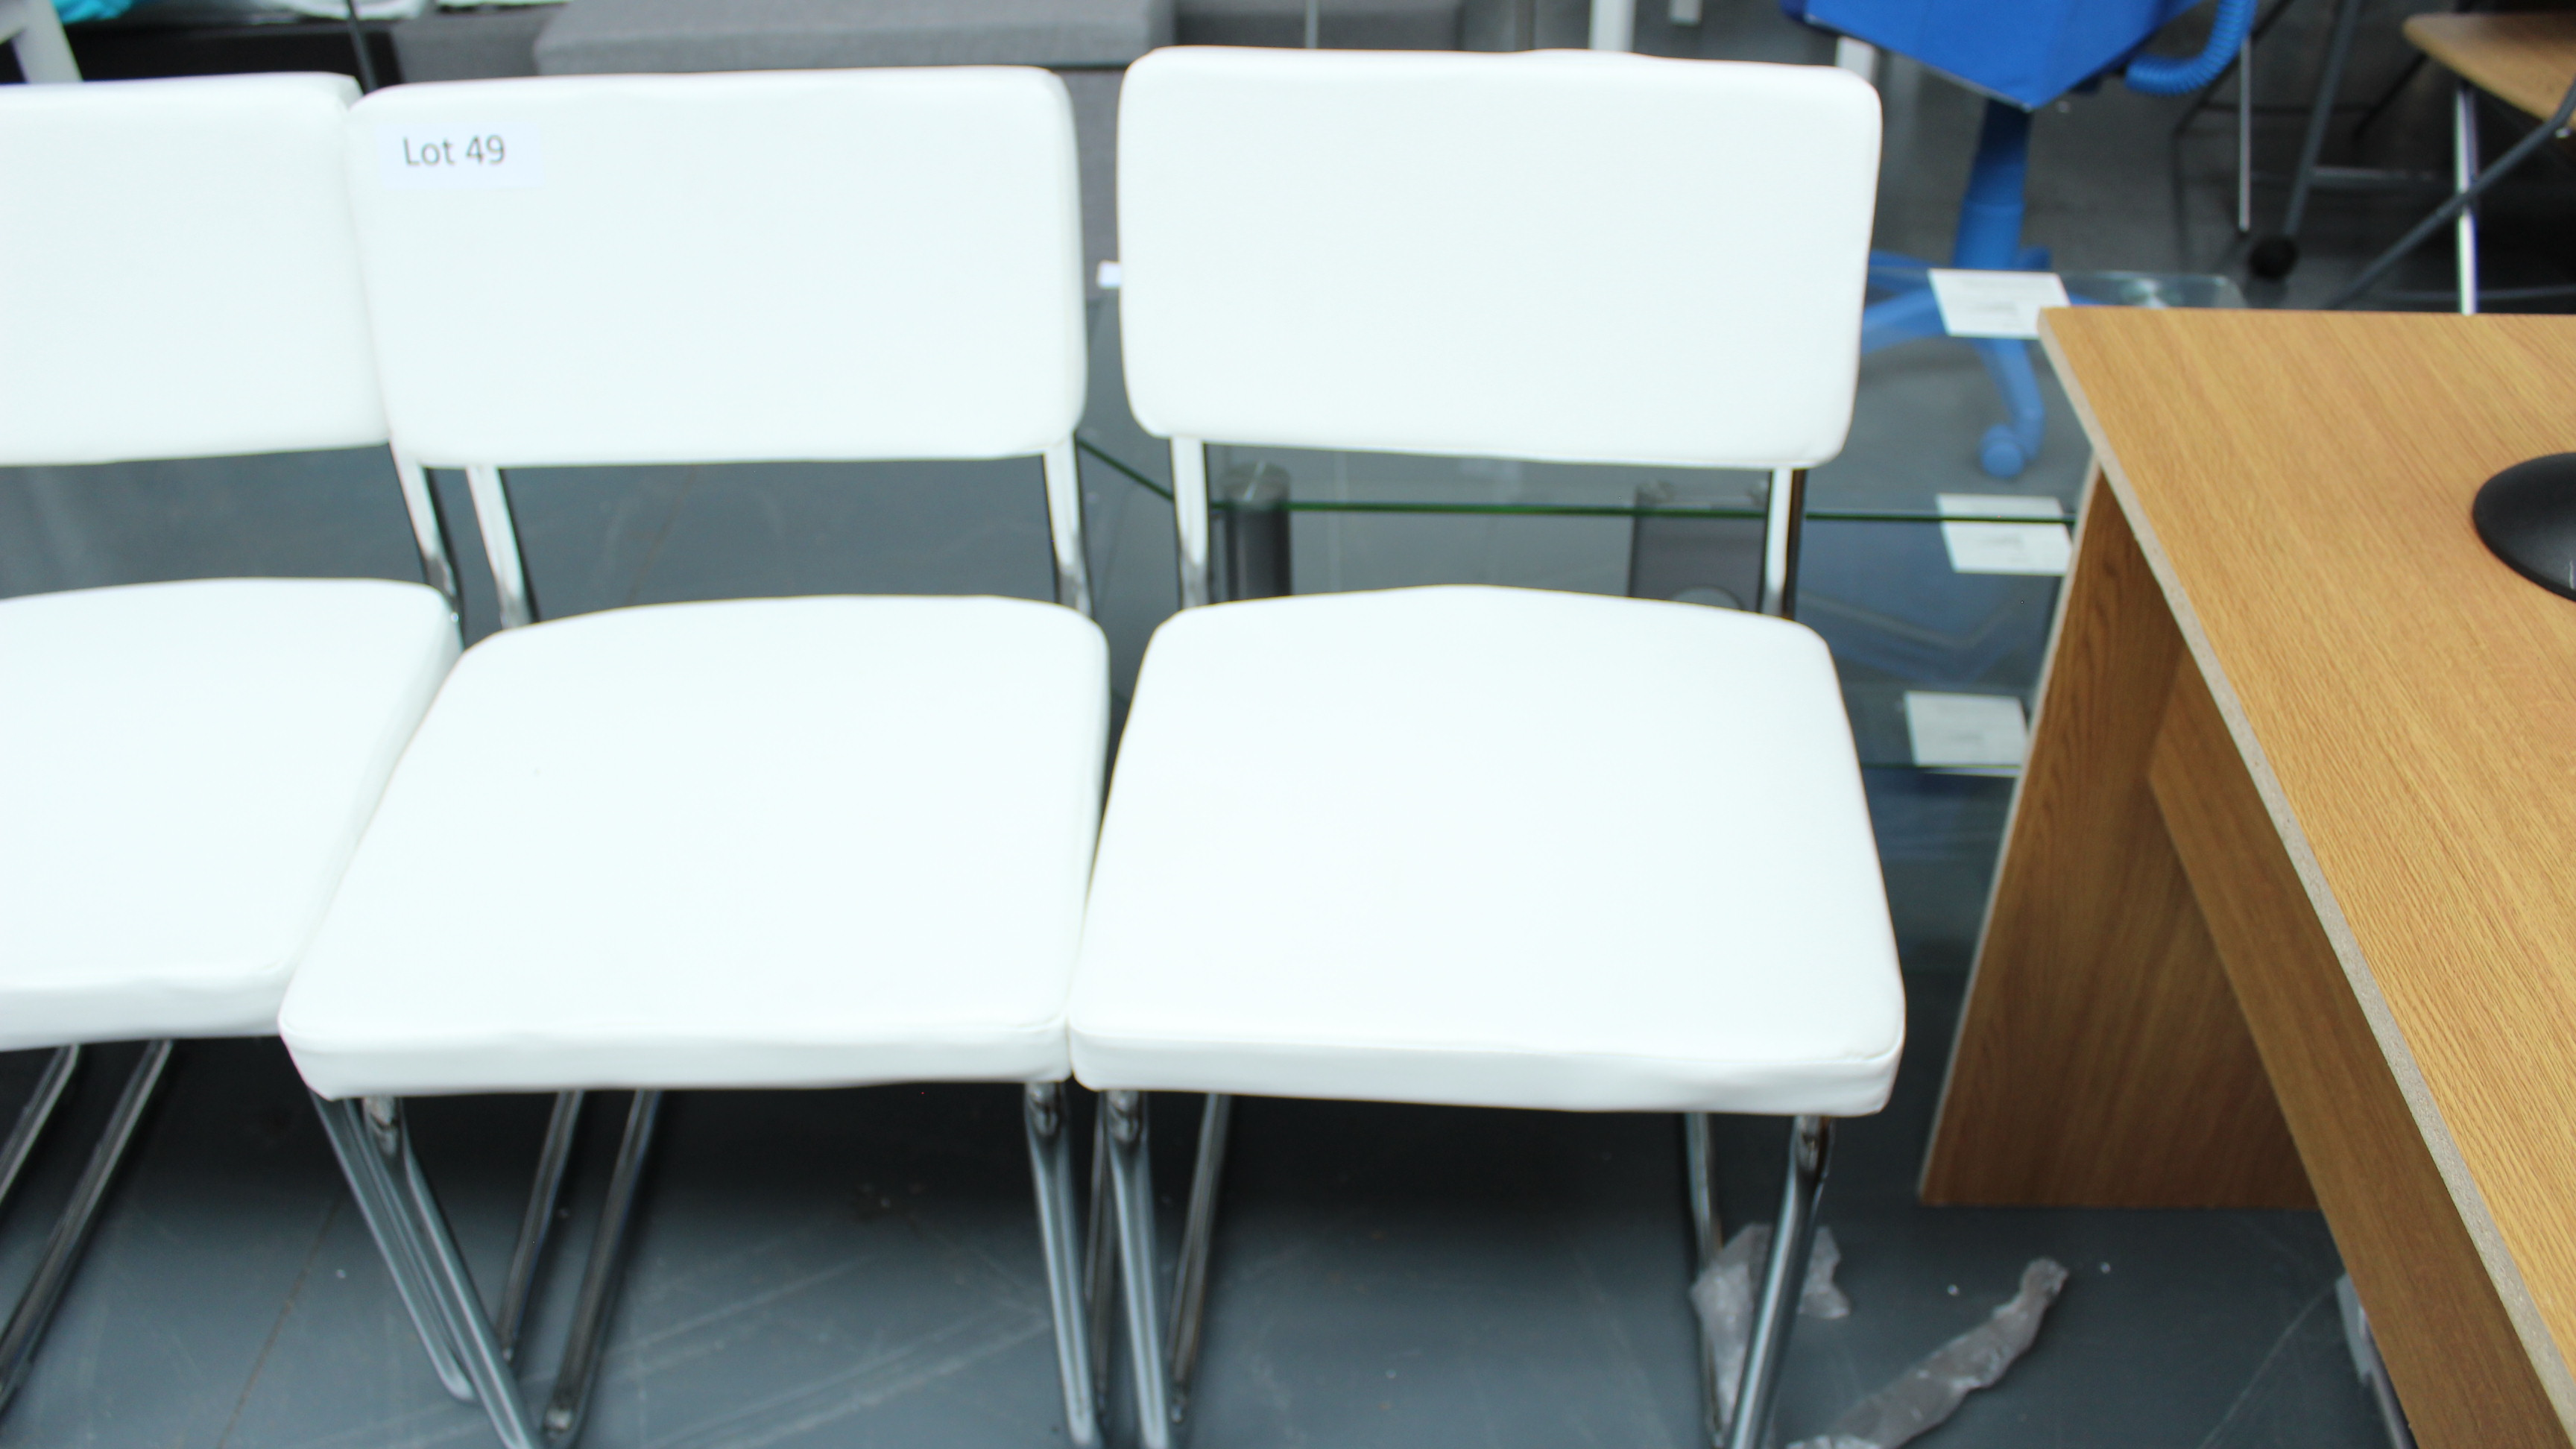 Lot 49 - 2 White & Chrome Chairs New